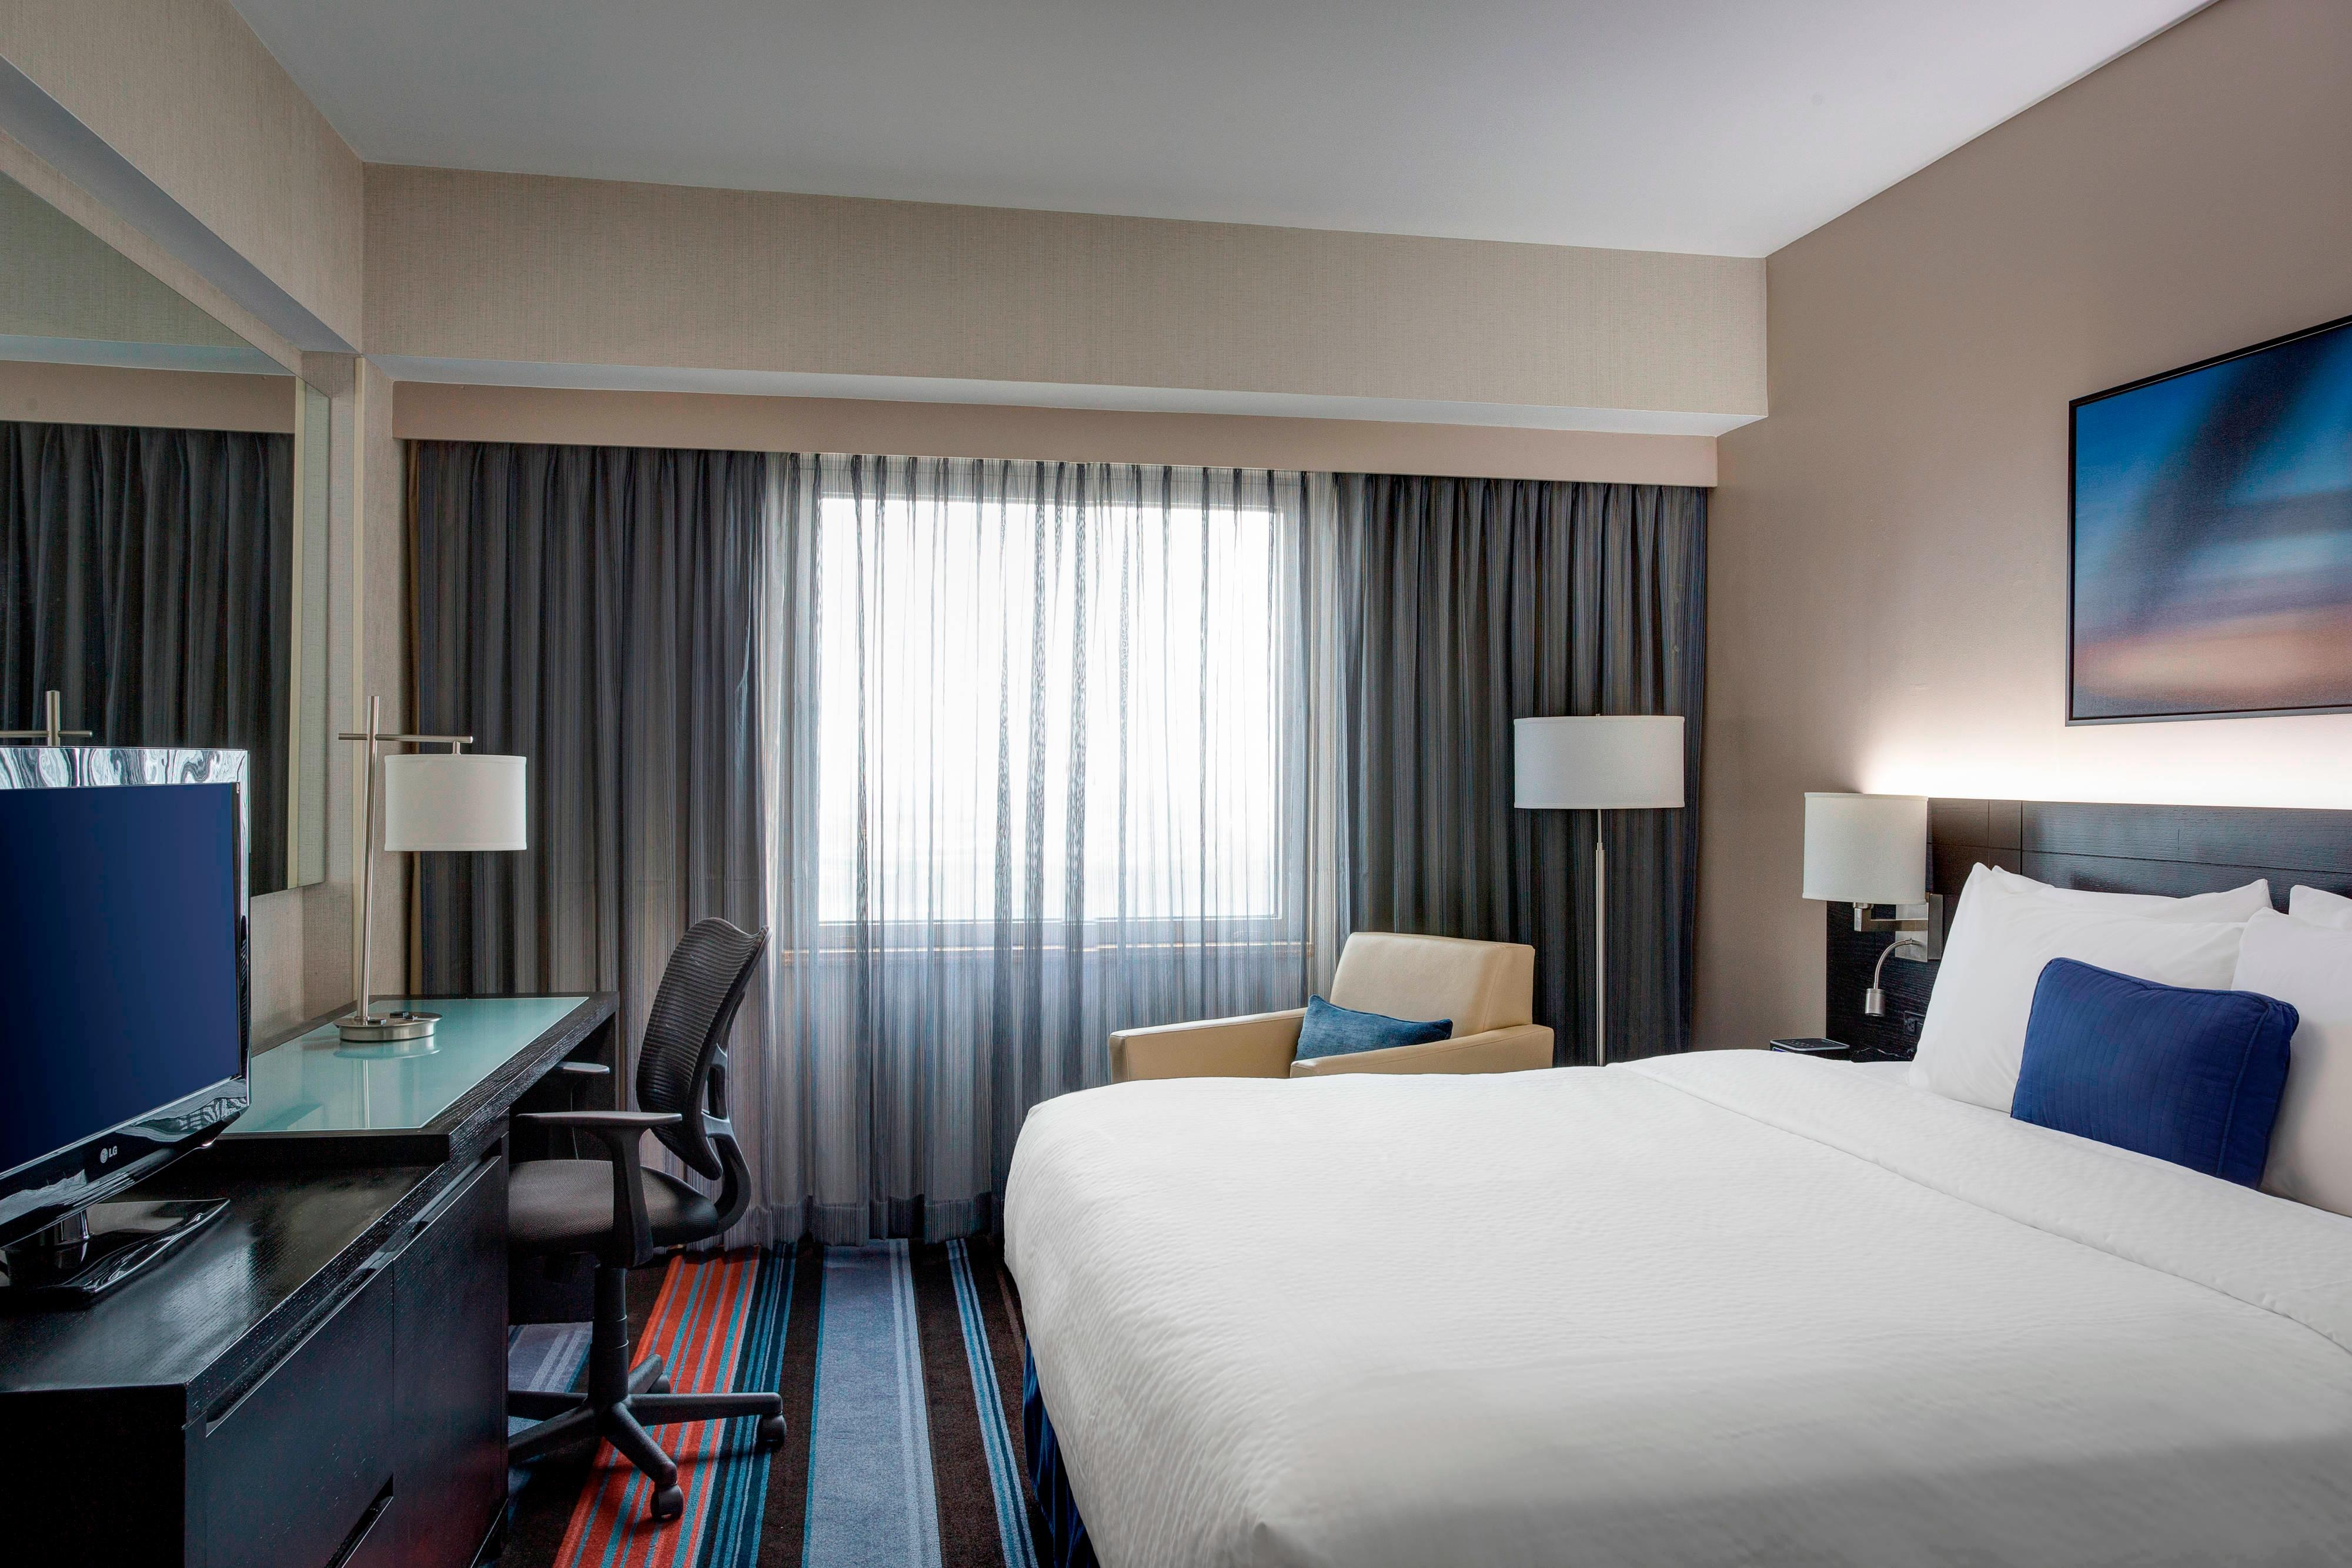 JFK International Airport Hotel Room